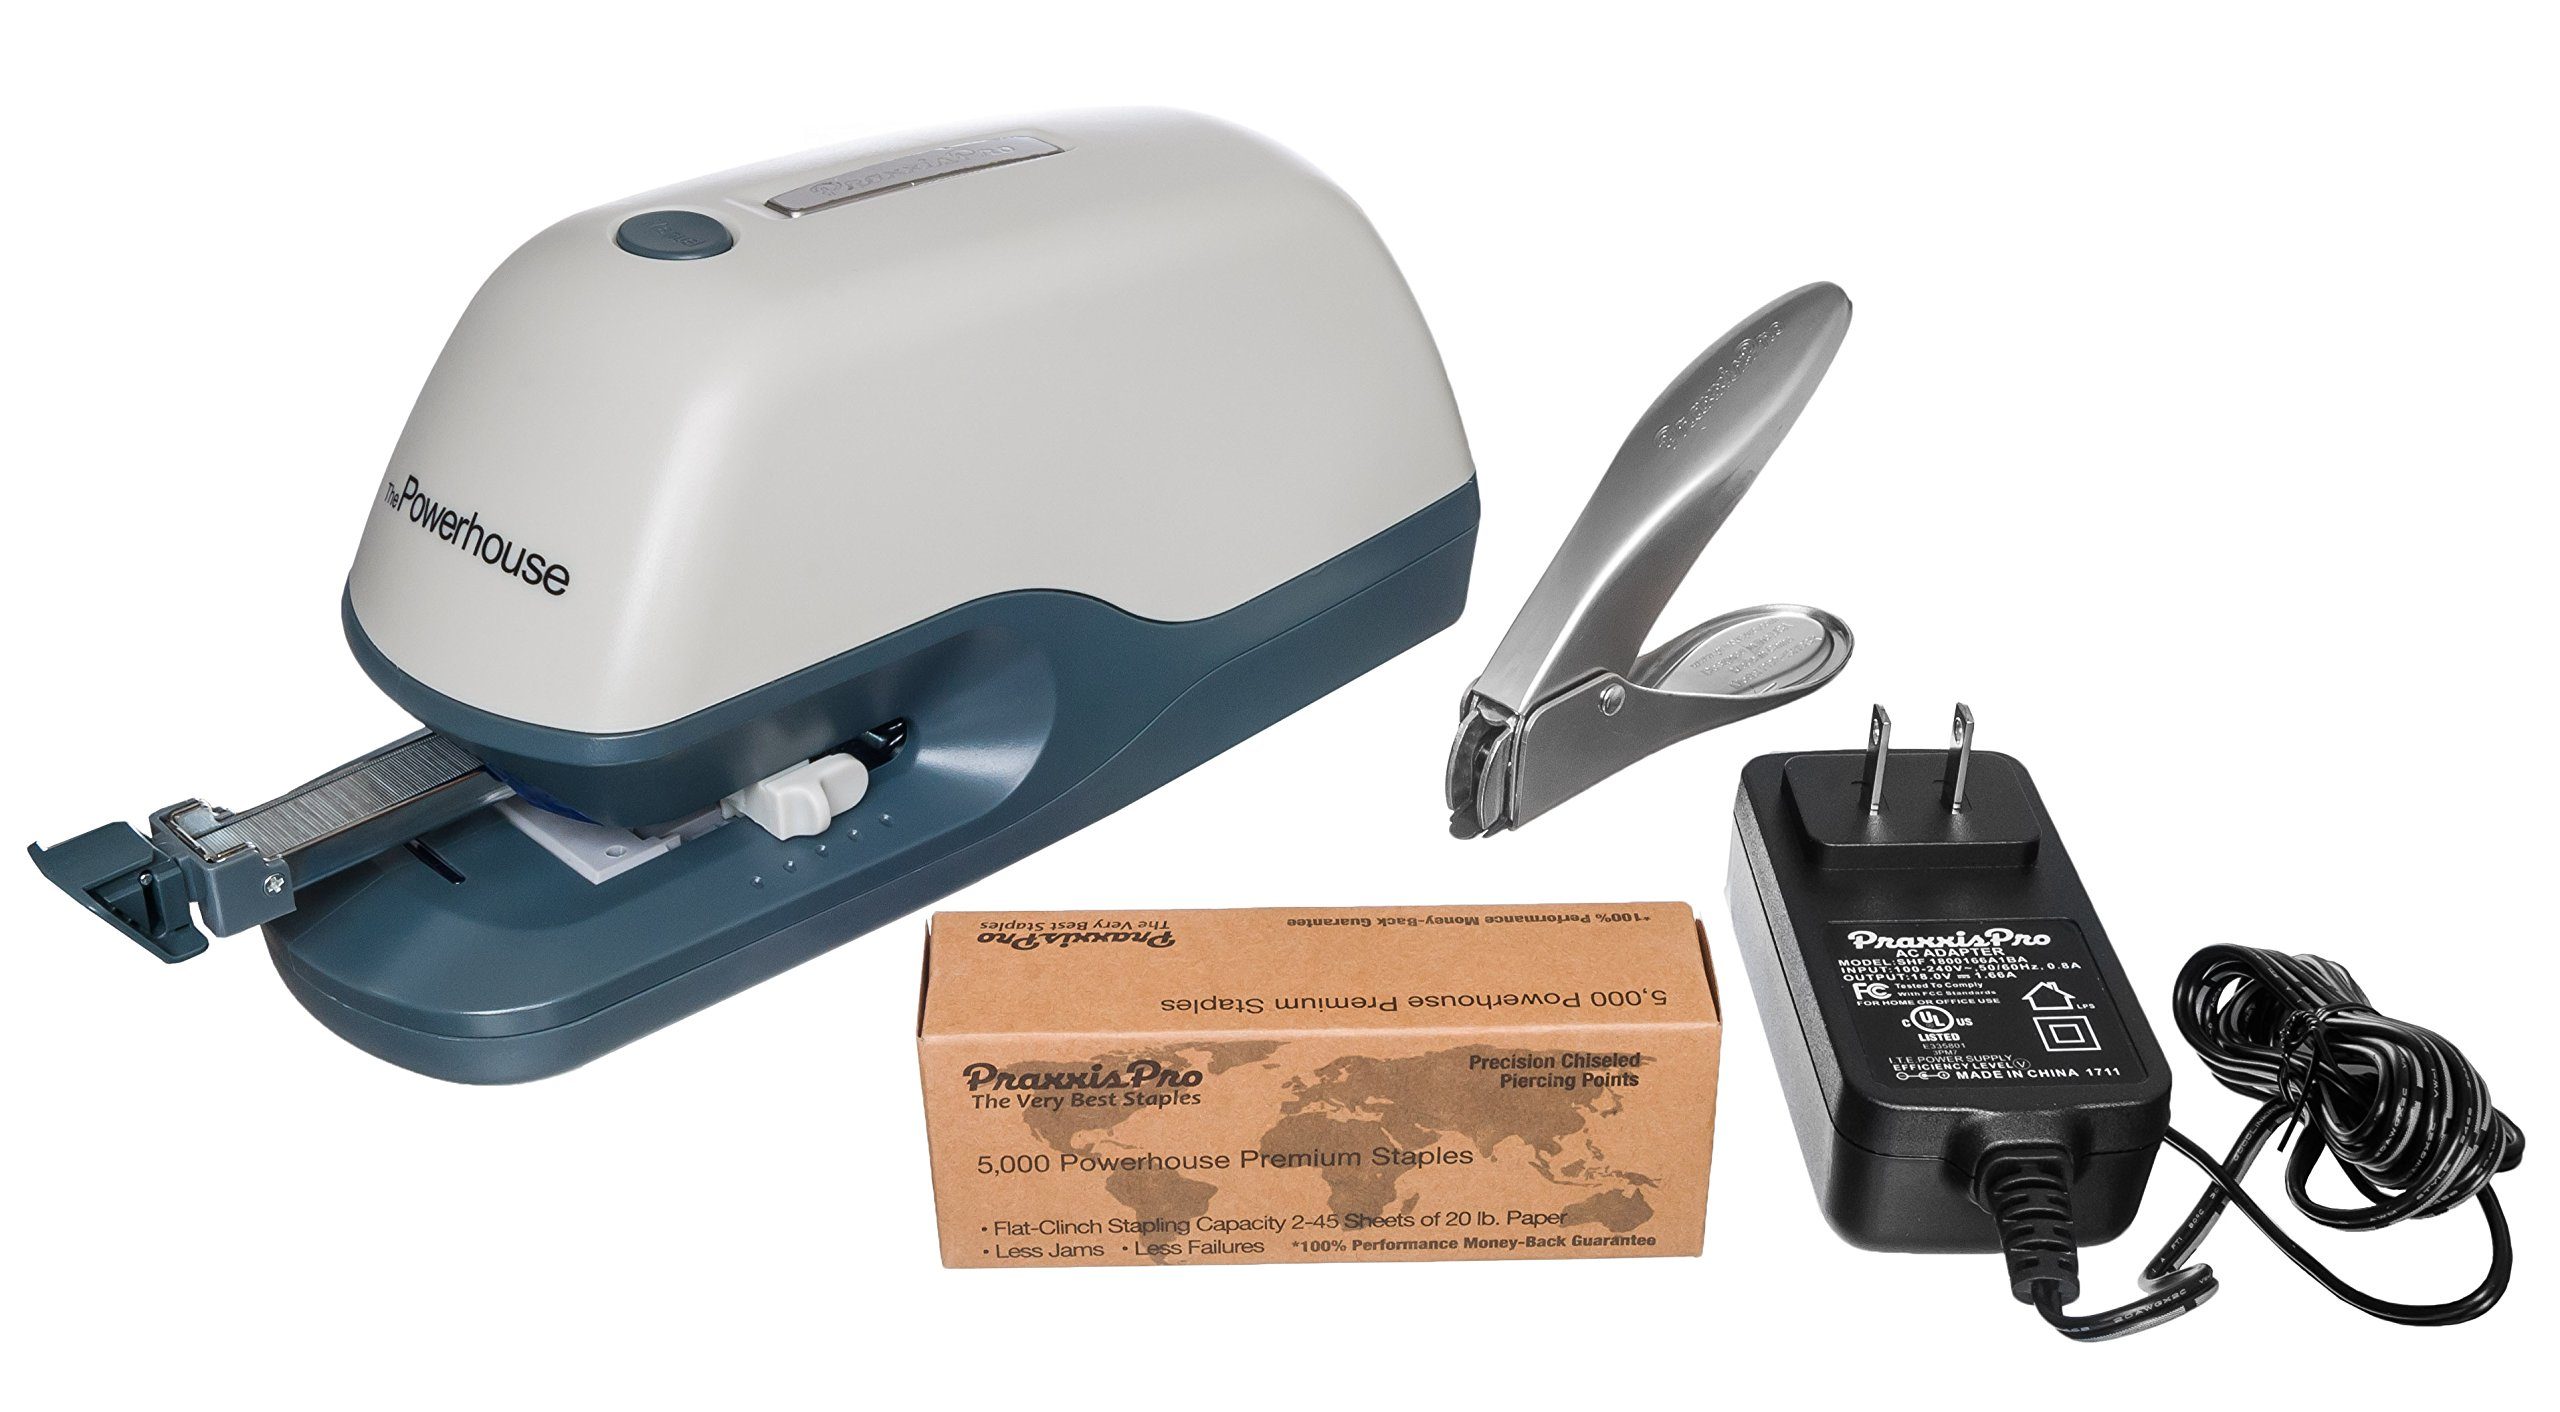 PraxxisPro - Powerhouse Flat-Clinch Electric Stapler - Premium Heavy Duty Stapler for 2 to 40 sheets, uses standard staples.